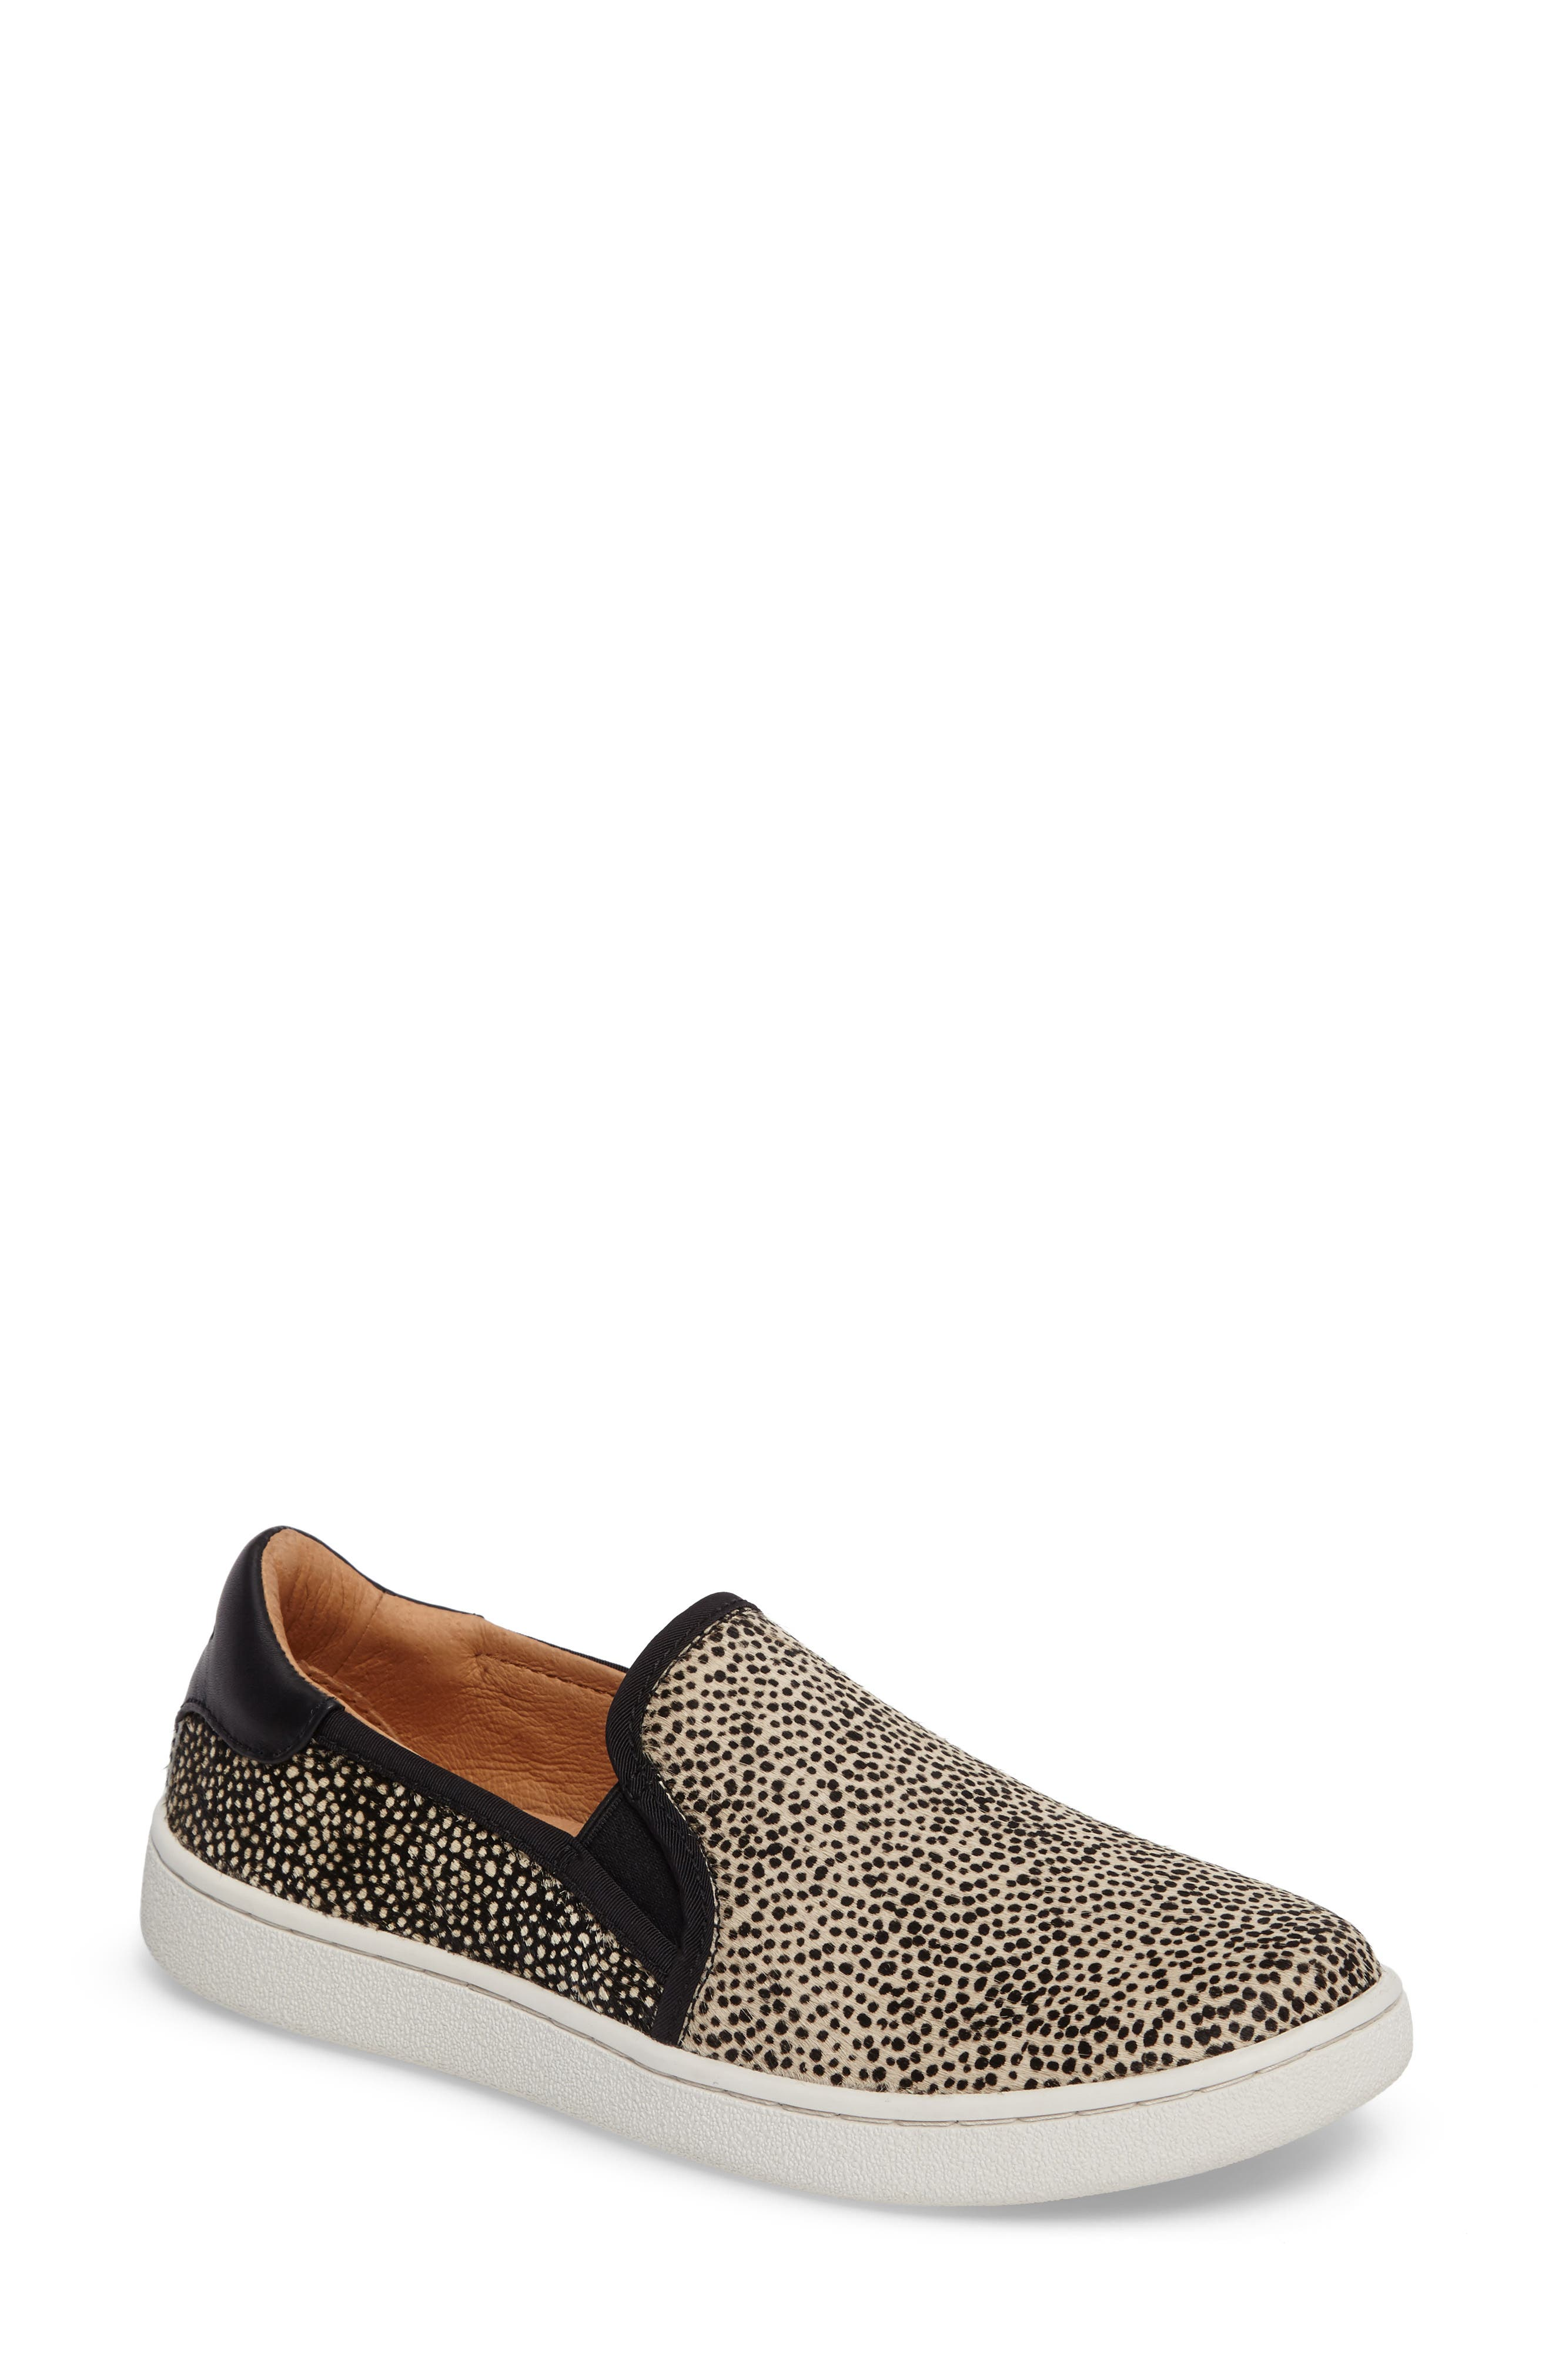 Cas Exotic Genuine Calf Hair Slip-On Sneaker,                             Main thumbnail 1, color,                             200